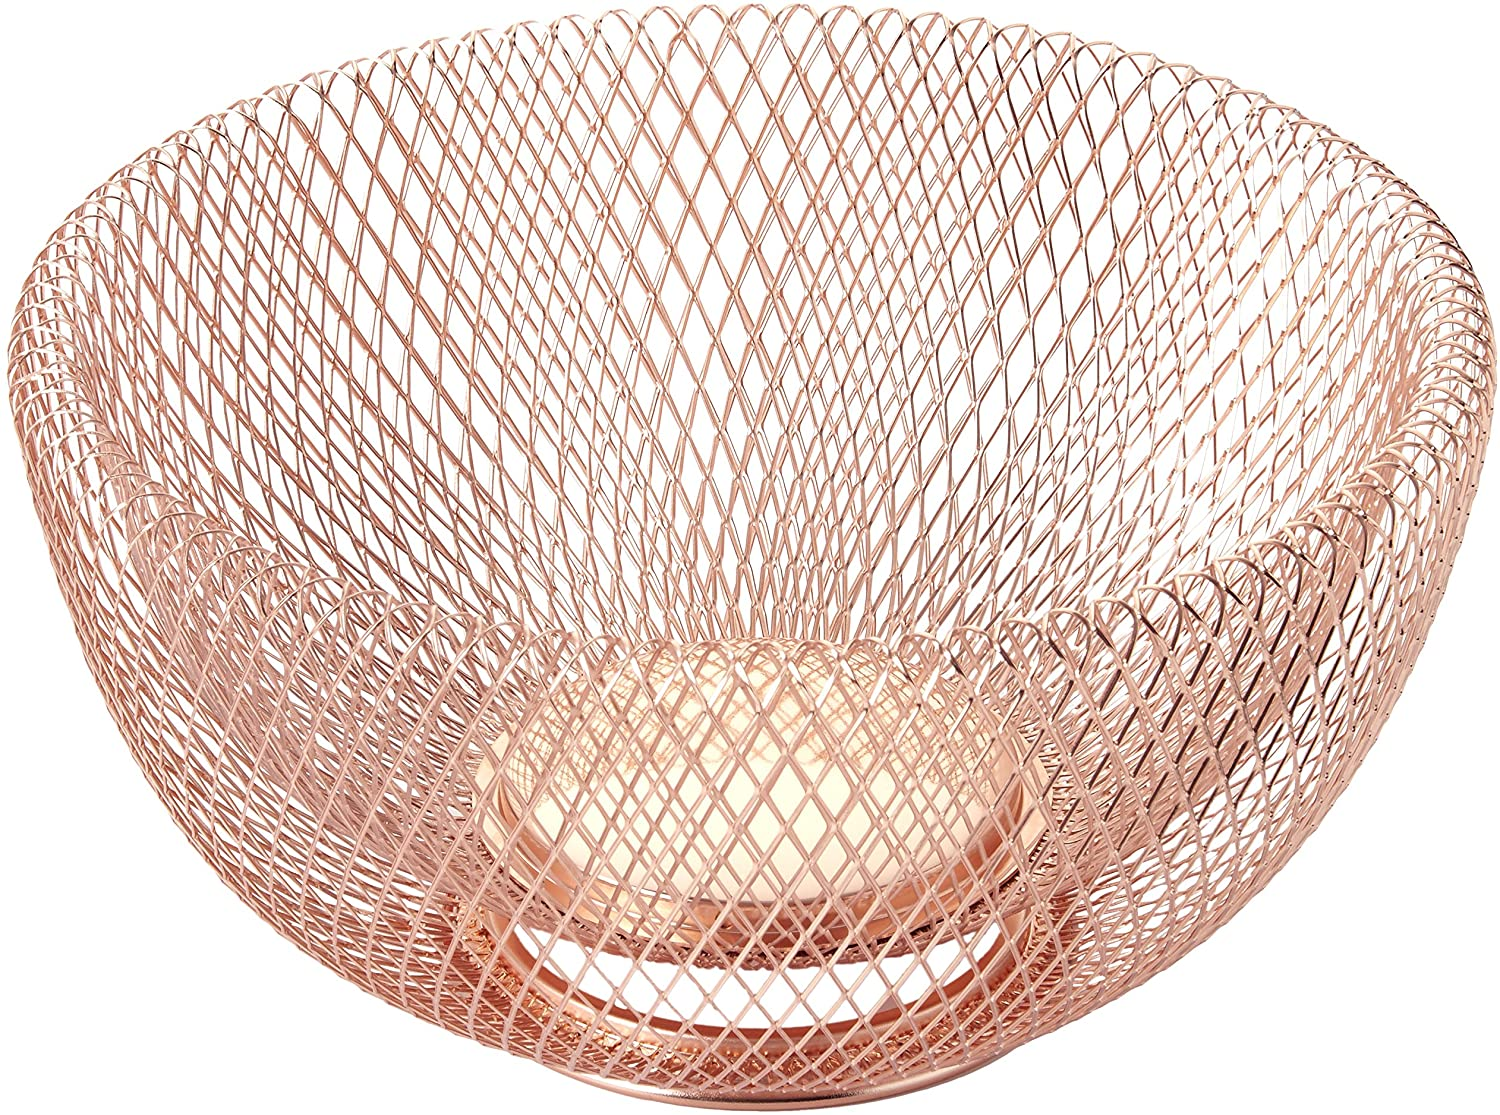 Nifty Double Wall Mesh 7510COP Fruit and Decorative Bowl